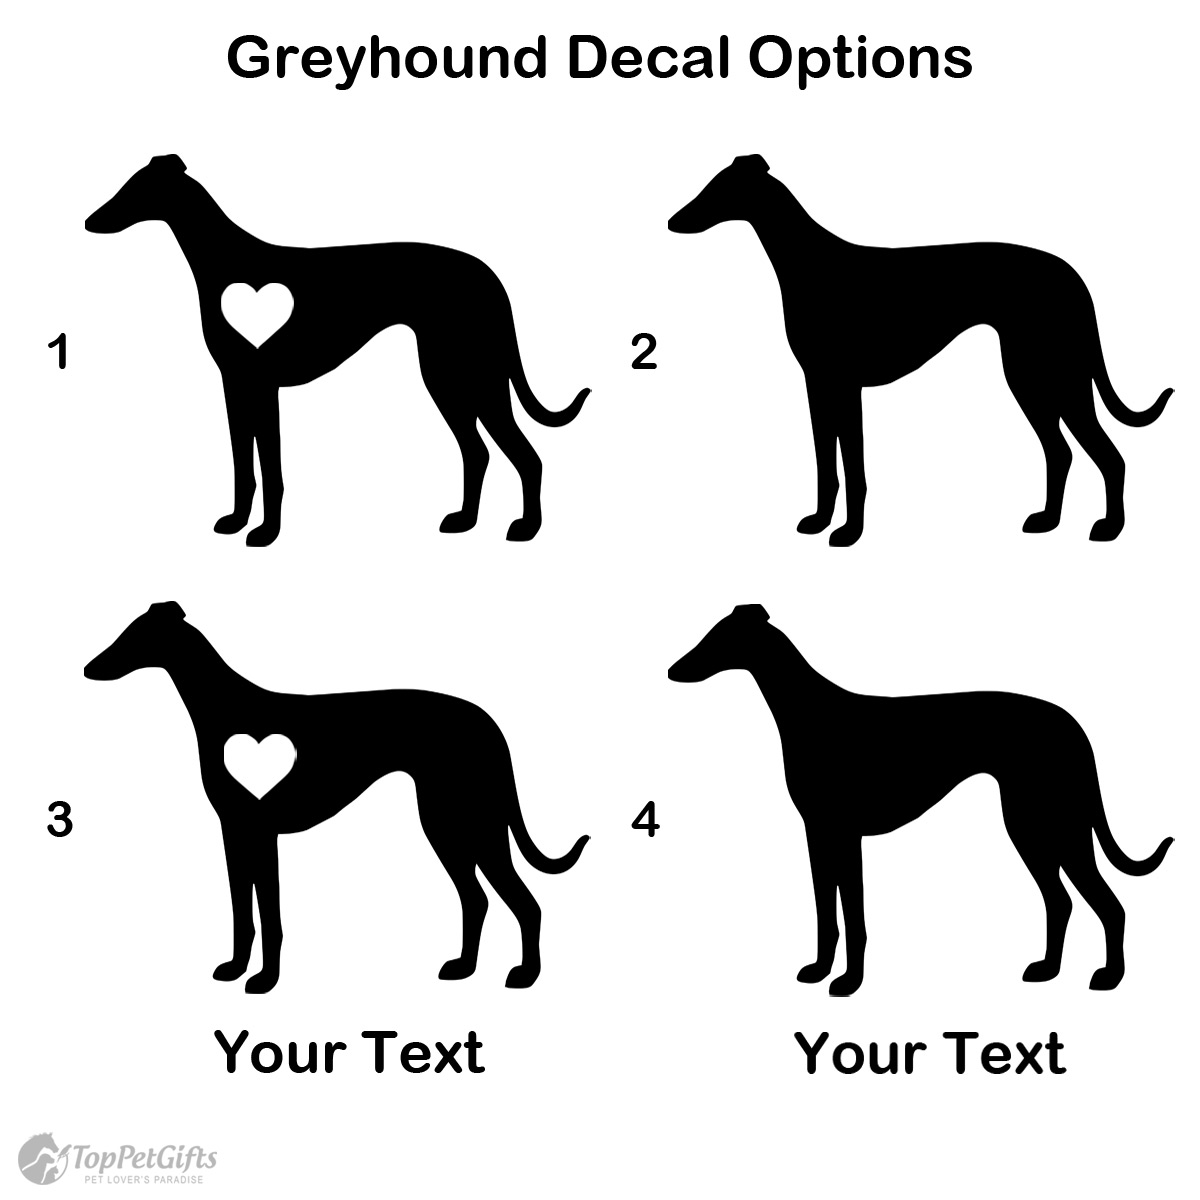 Personalized Greyhound Decal